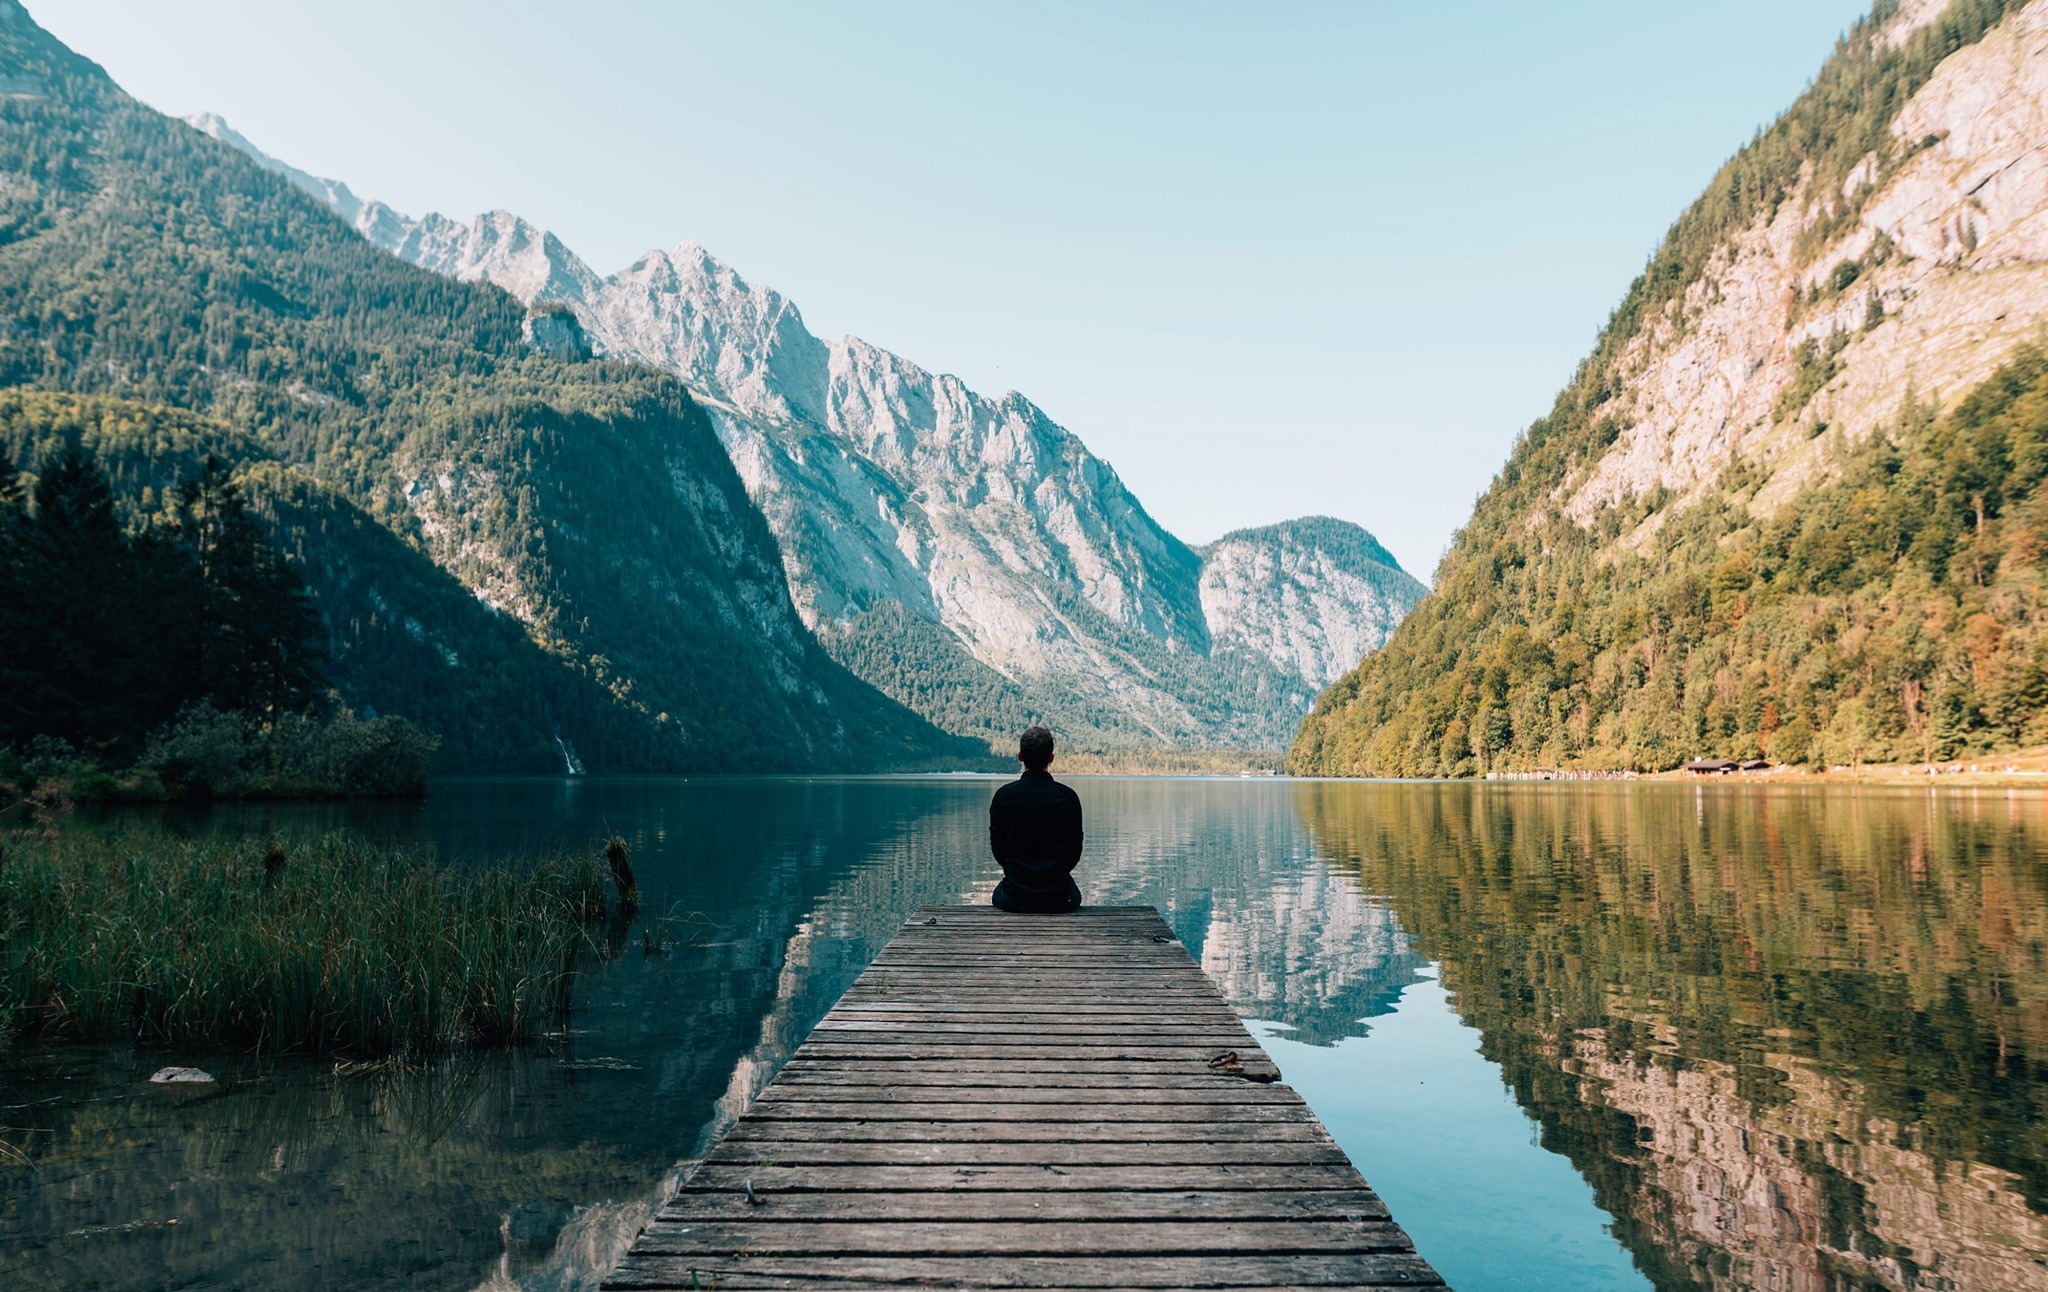 Sitting on a pier, overlooking lake, surrounded by mountains